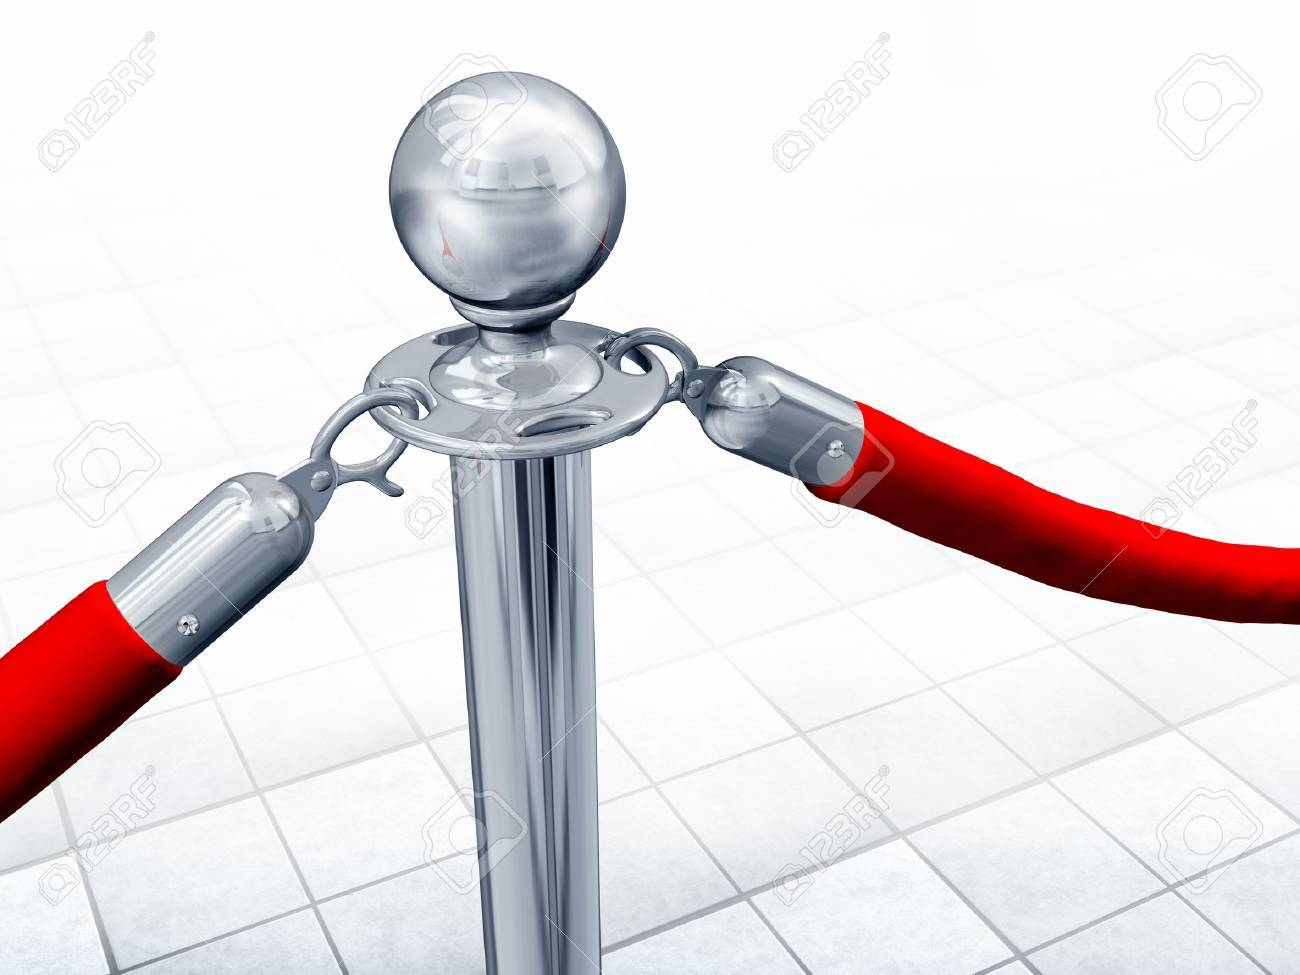 Illustration of velvet rope and stand close up Stock Photo - 9414998